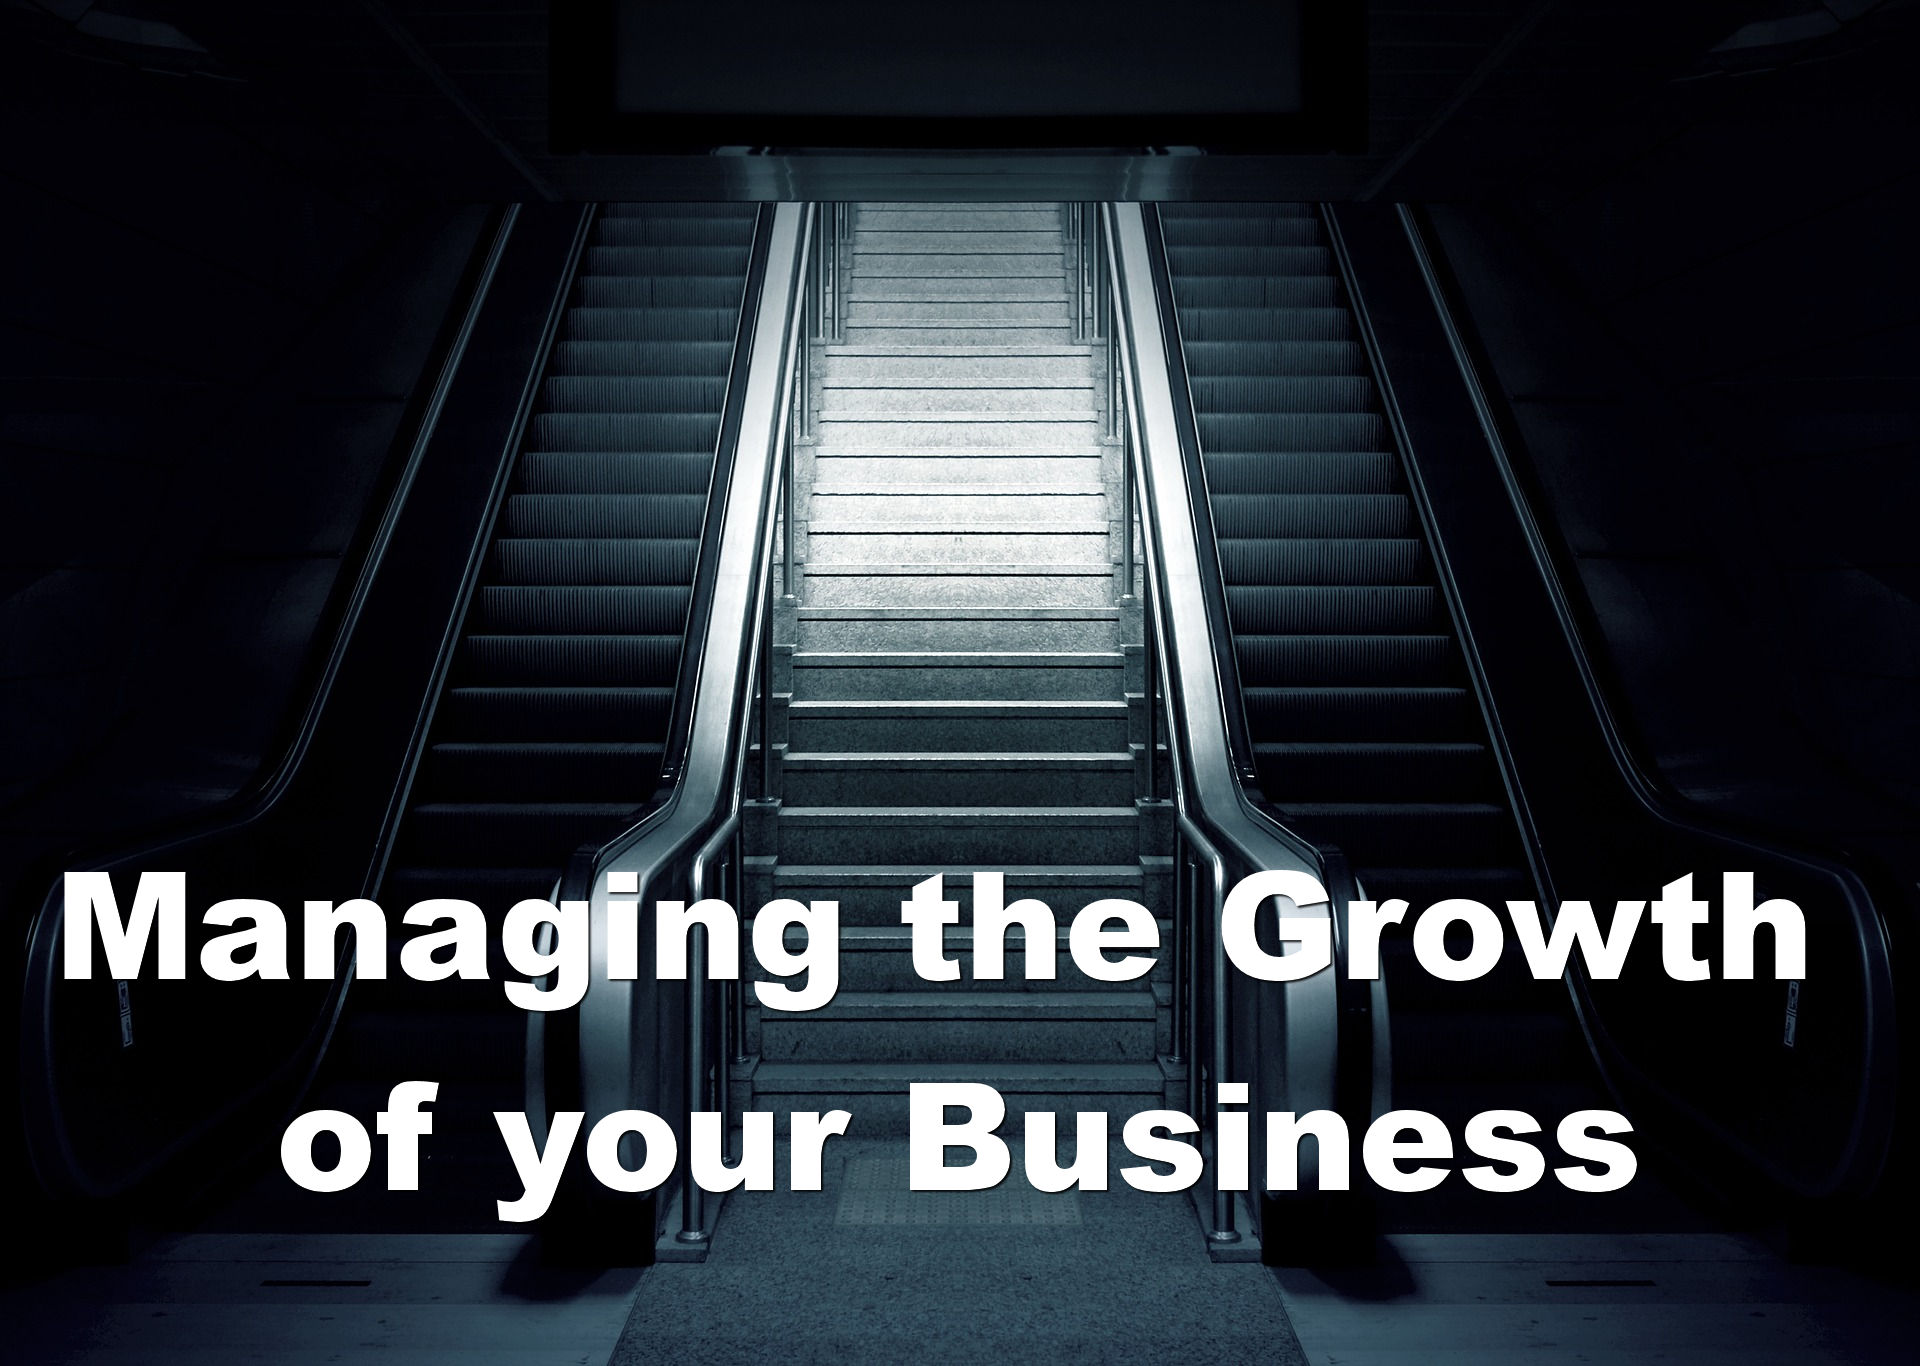 Manage growth of business